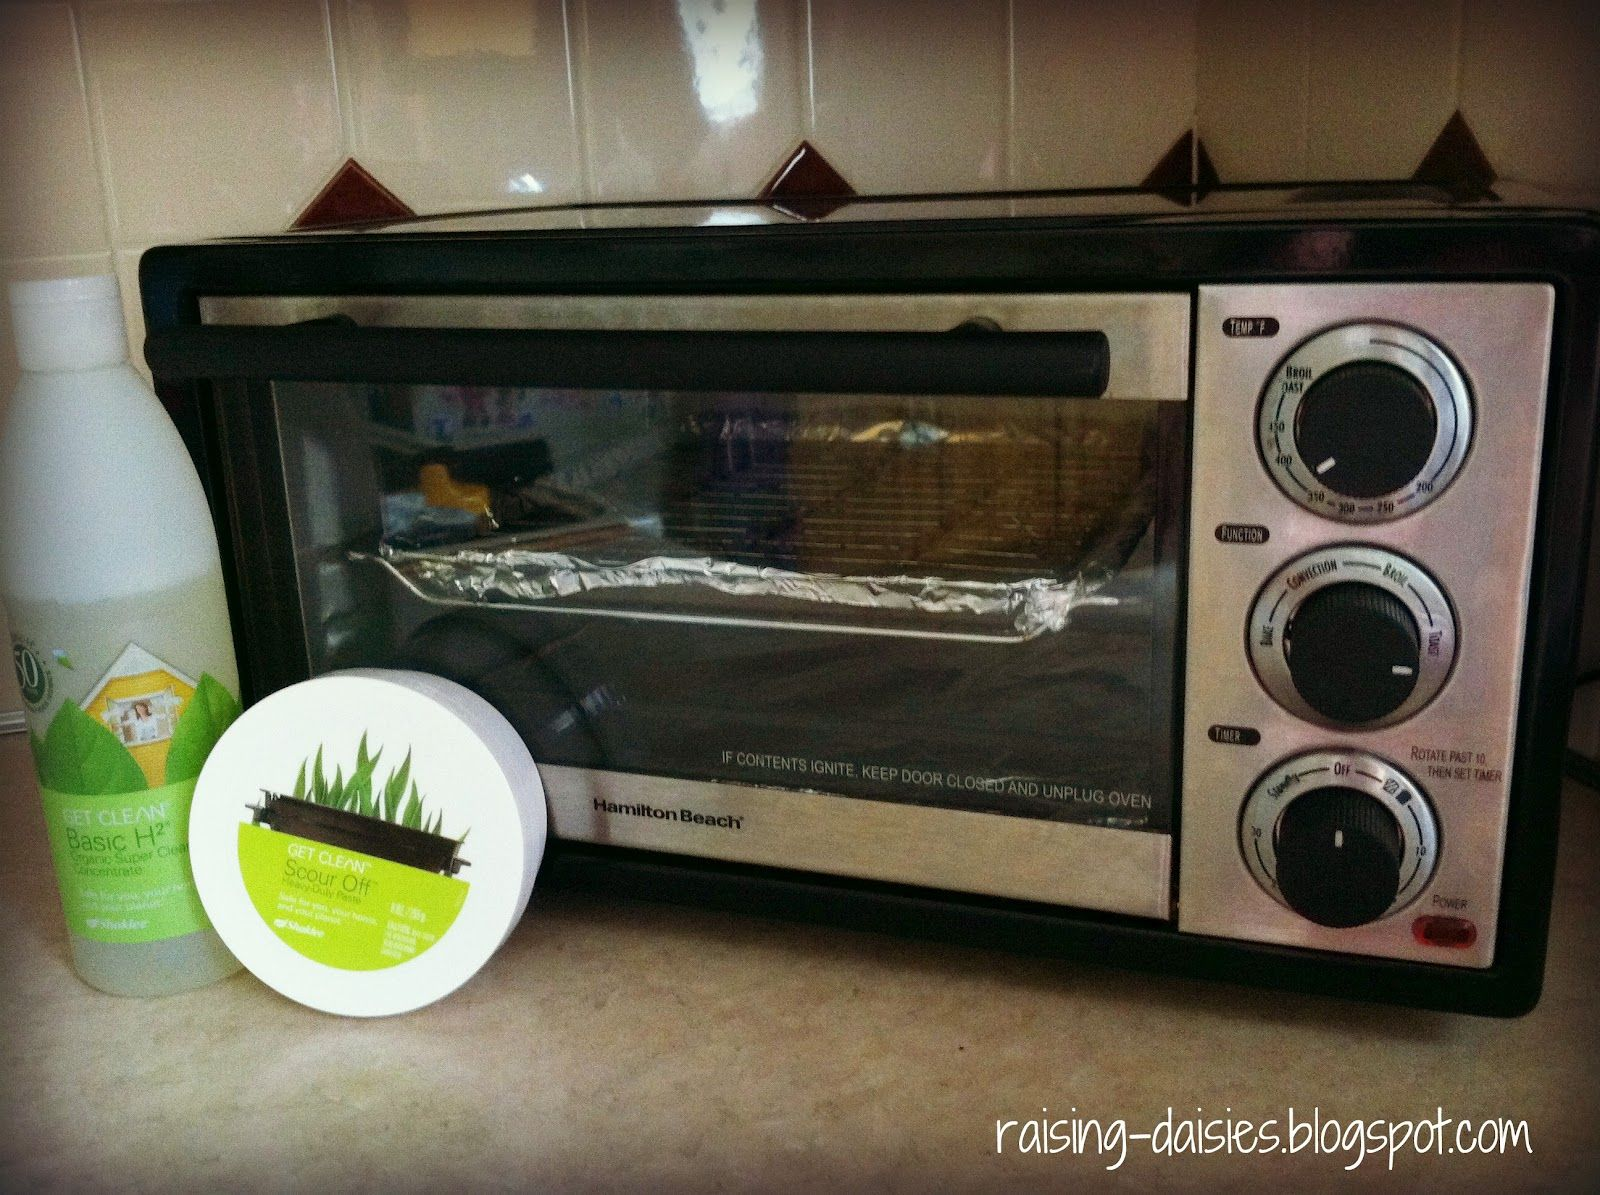 How To Clean Your Toaster Oven Without Harsh Chemicals